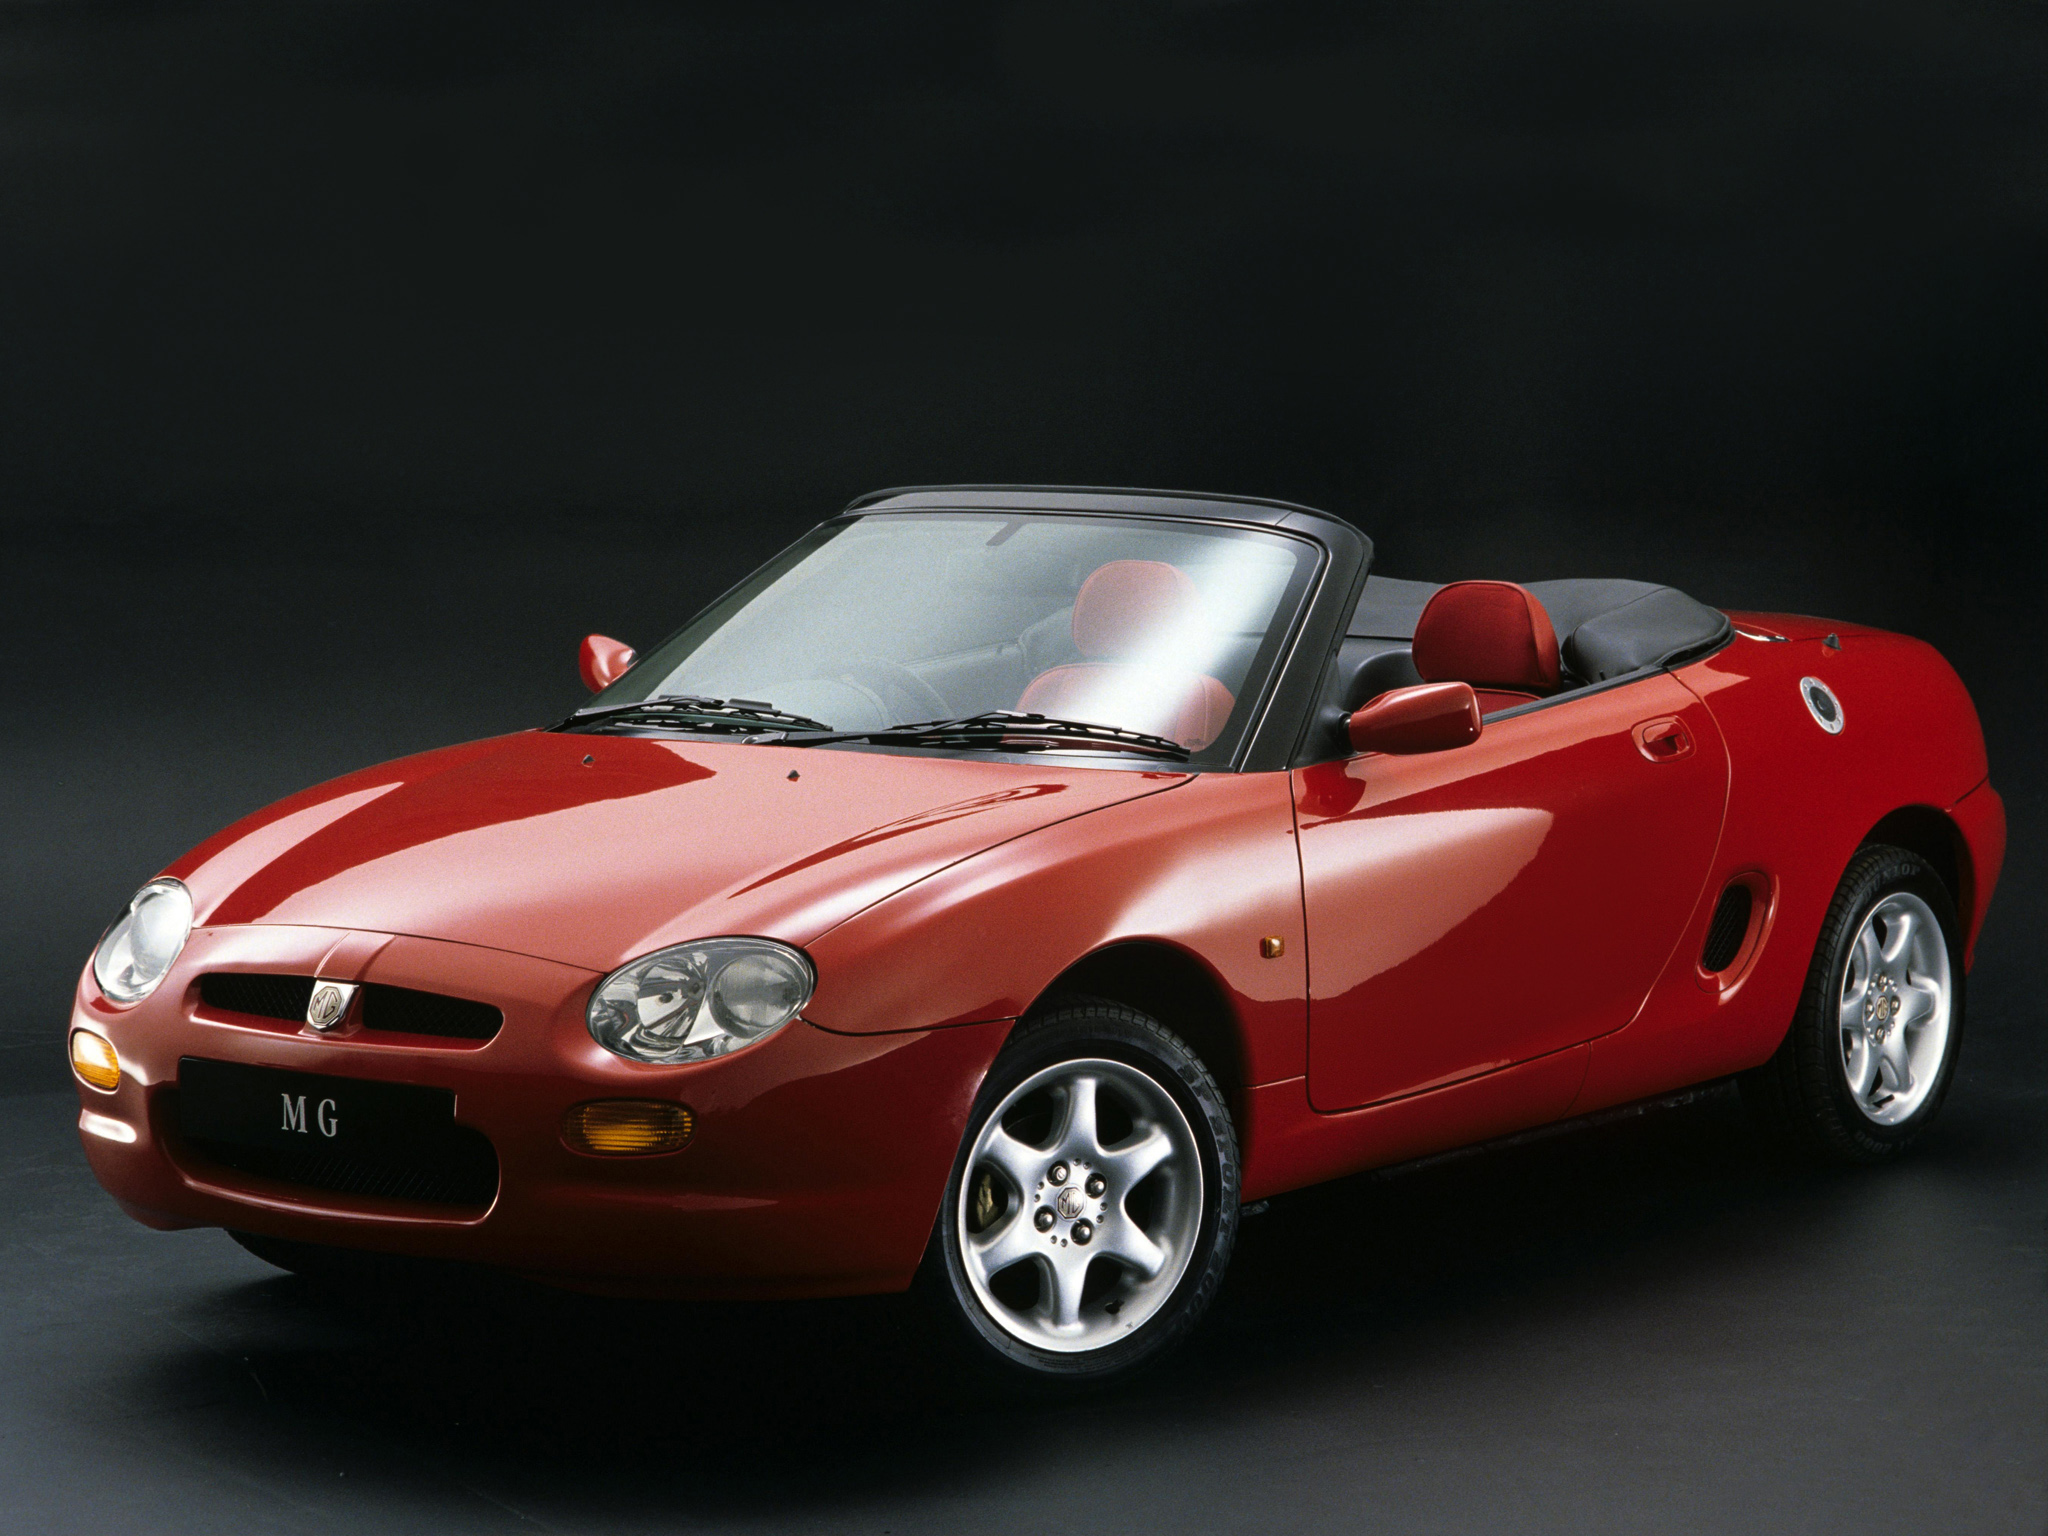 1995 Rover MGF #2